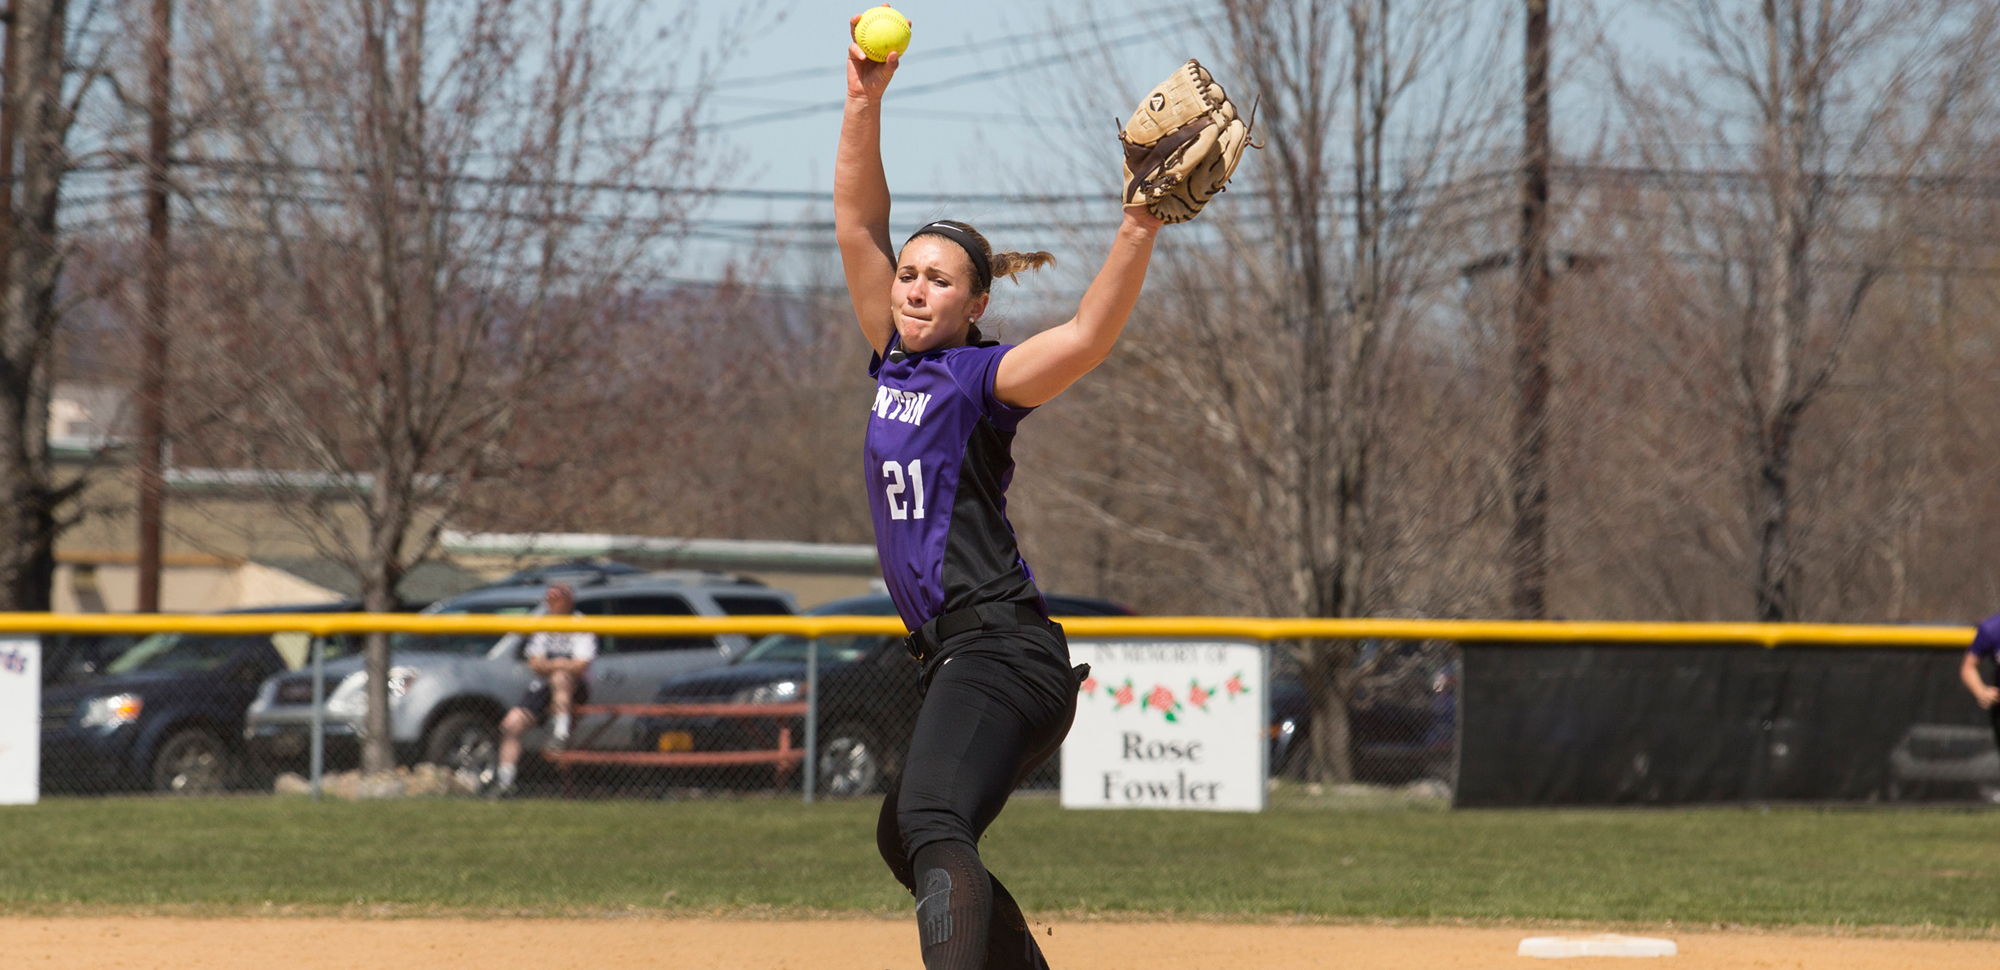 Junior pitcher Morgan Rentzheimer didn't allow a hit for four and one-thirds against MCLA on Thursday, as Scranton won the game, 15-1. Rentzheimer finished the Spring Break trip with a 4-2 record, as well.